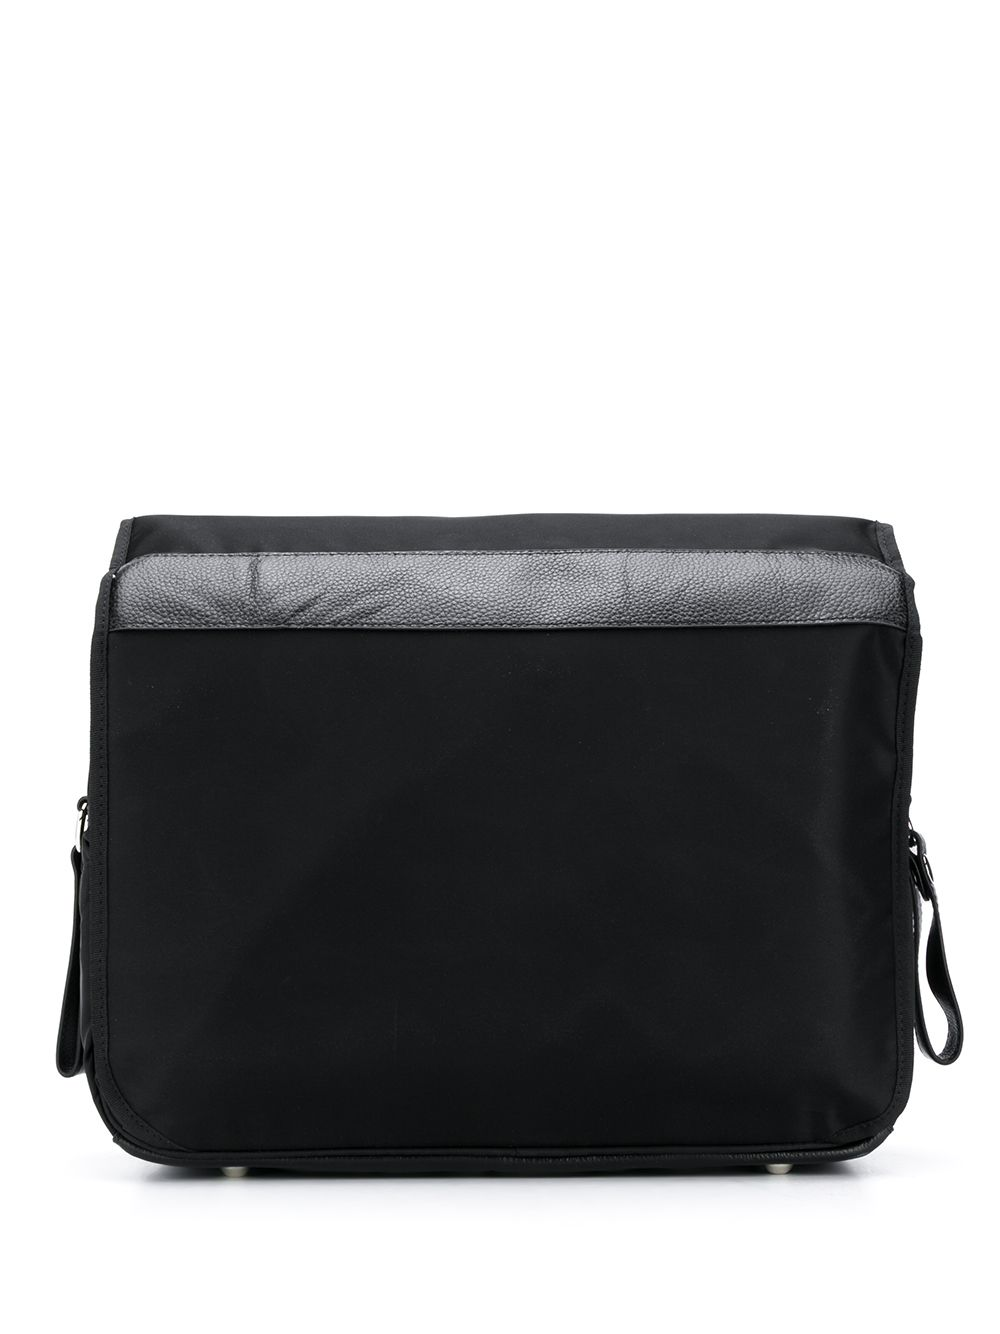 GIVENCHY KIDS Logo Baby Changing Bag Black